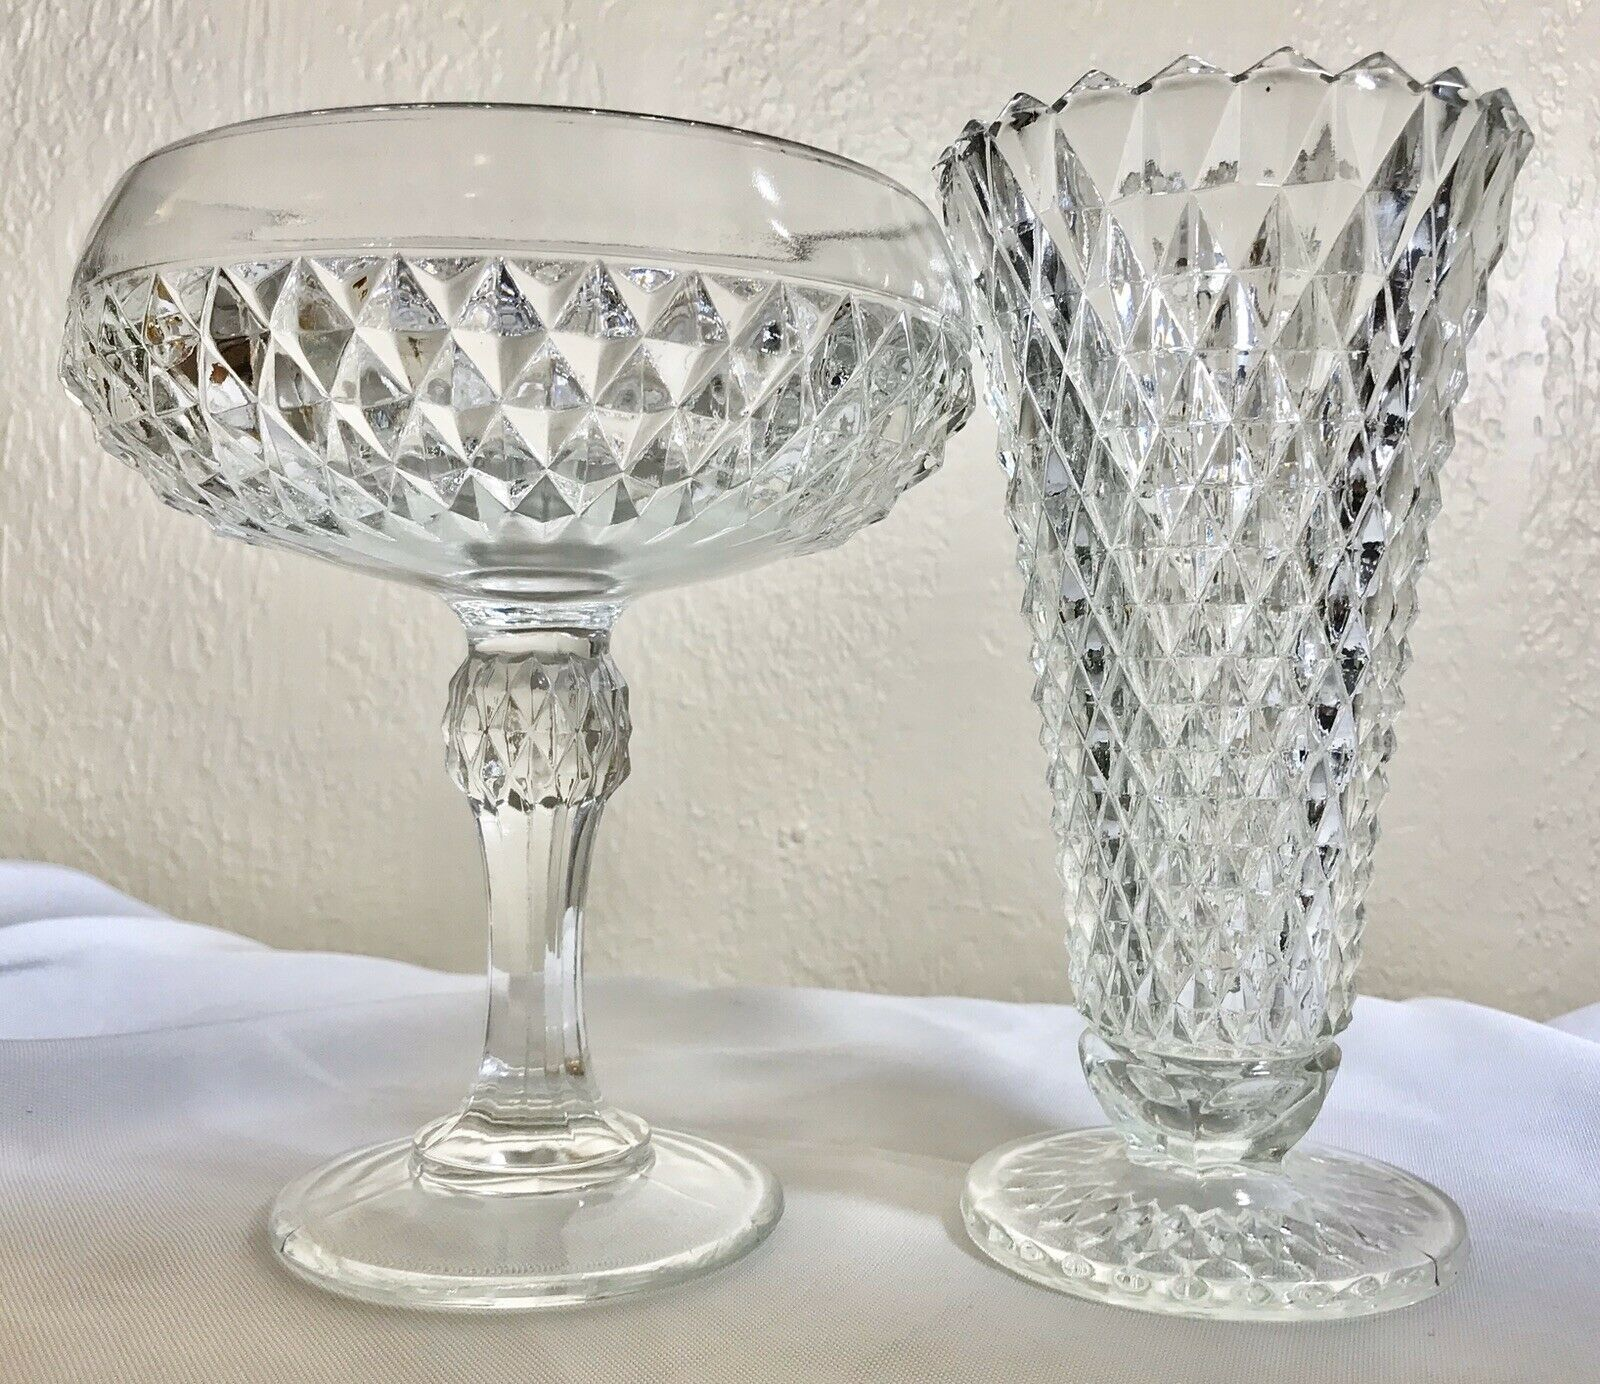 "Vintage Indiana Glass Diamond Footed 7.5"" Compote Candy Dish & 7.75"" Vase Set - $34.50"